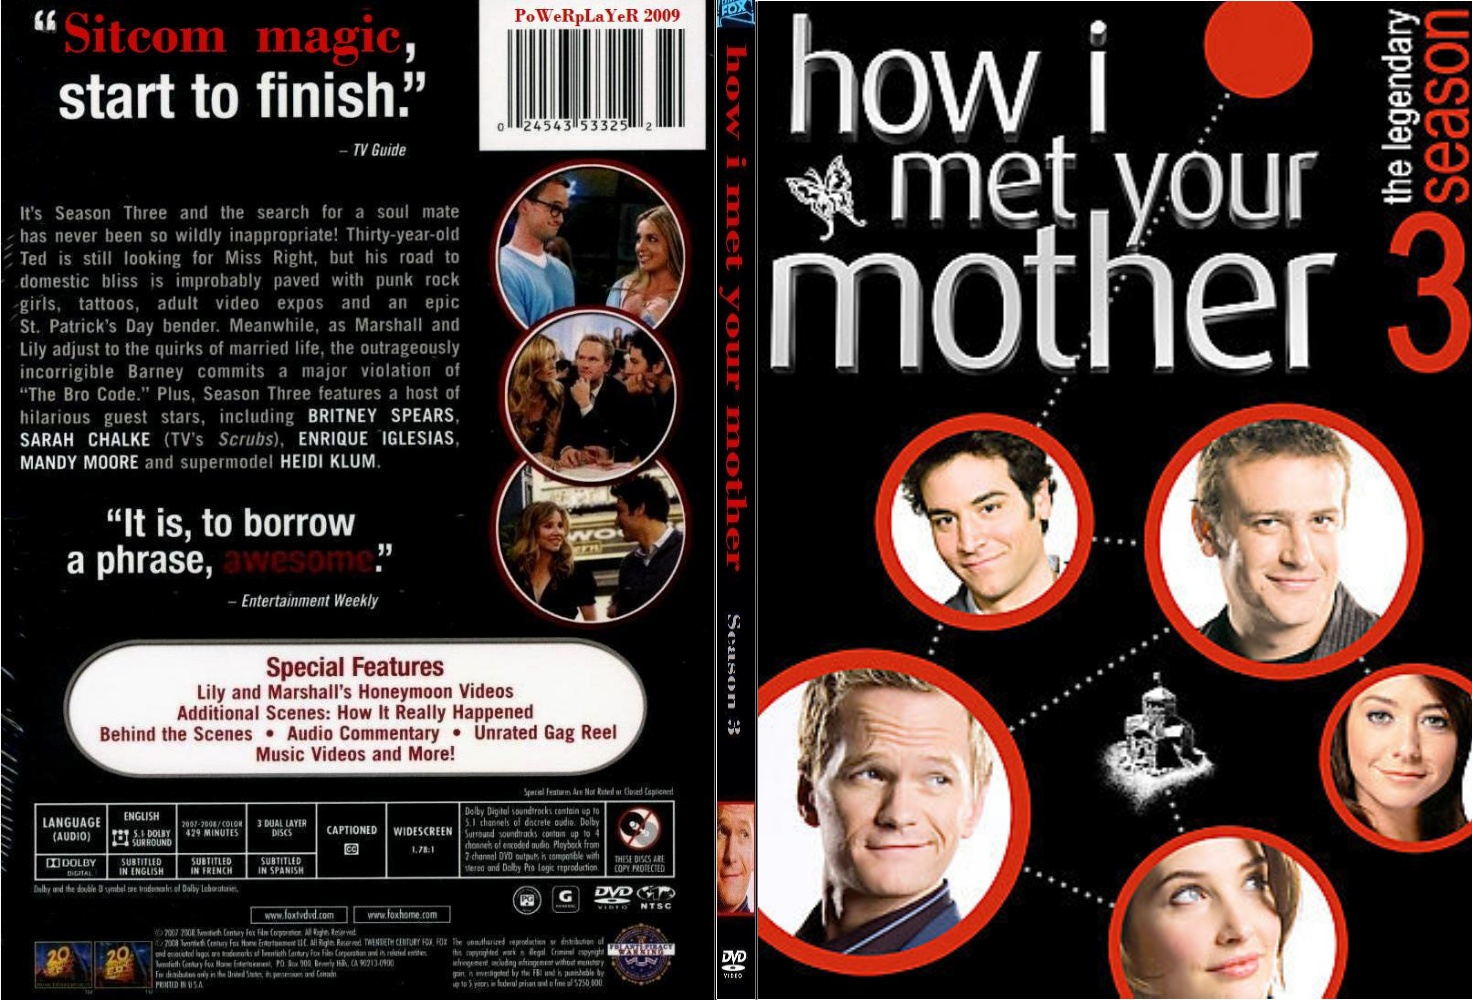 covers box sk how i met your mother season 3 slim